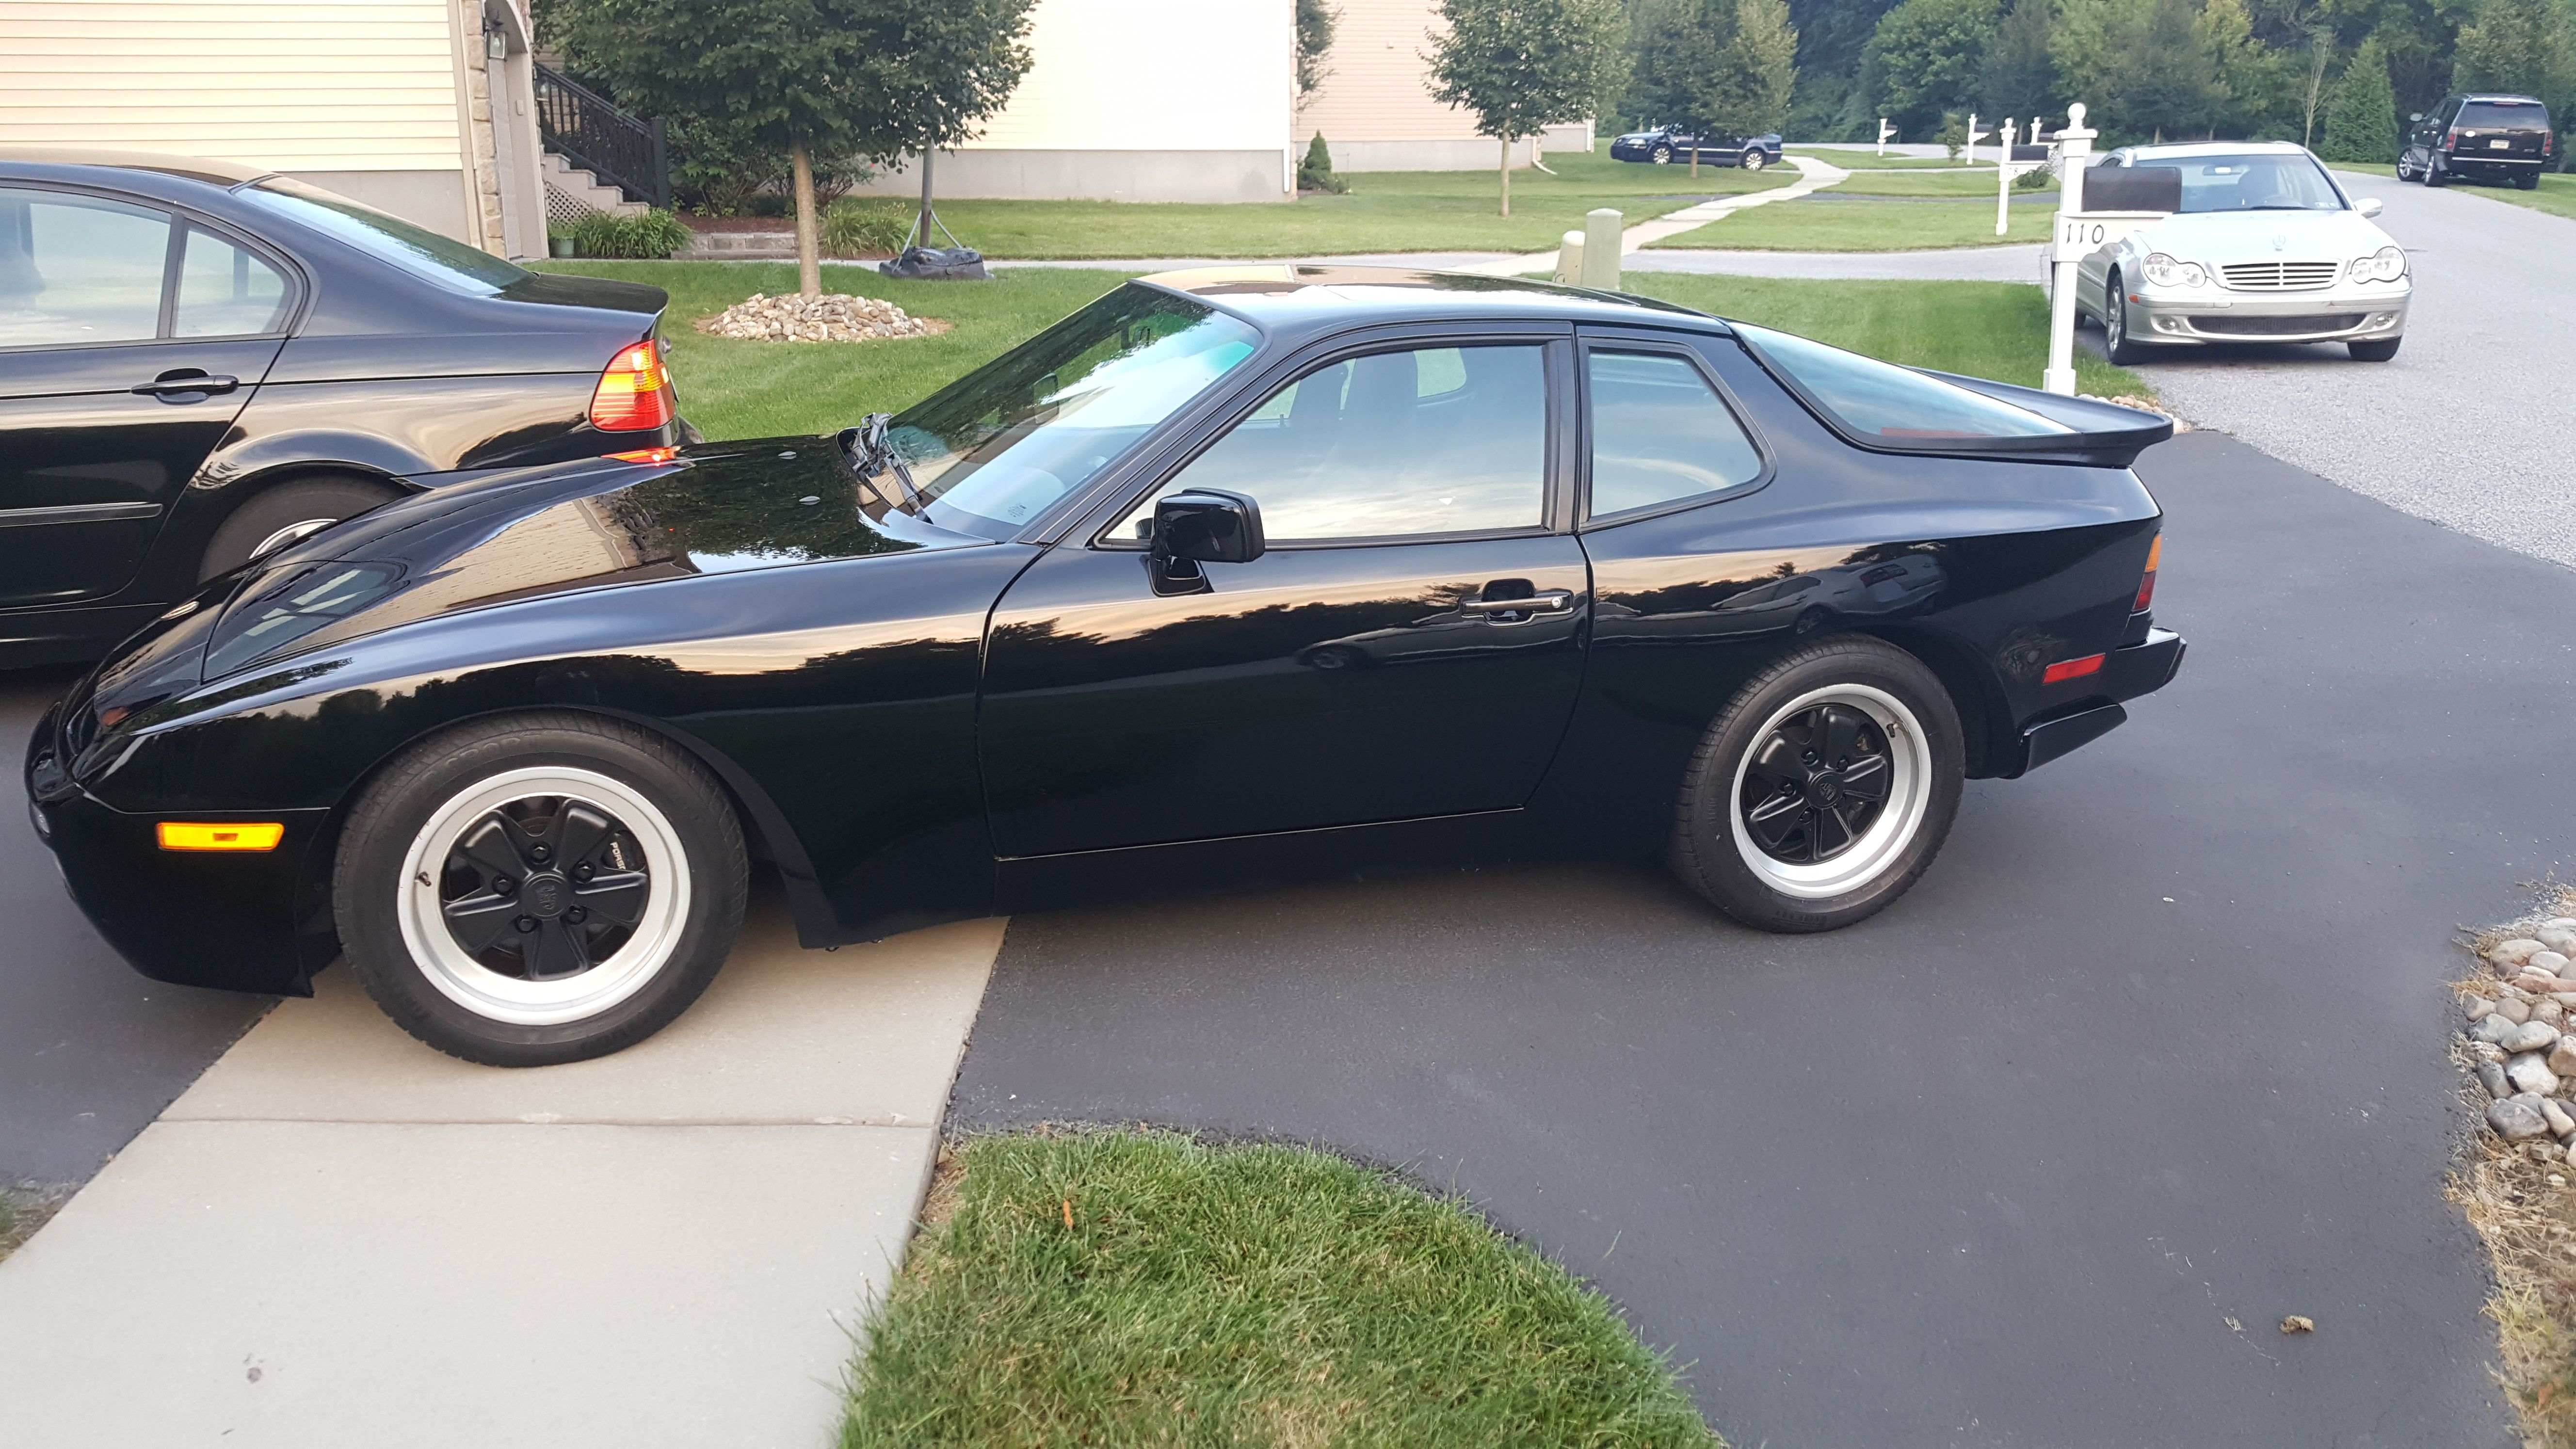 Pin By Michael Heiliger On 1986 Porsche 944 Na And Turbo Porsche 924 Porsche 944 Vintage Porsche